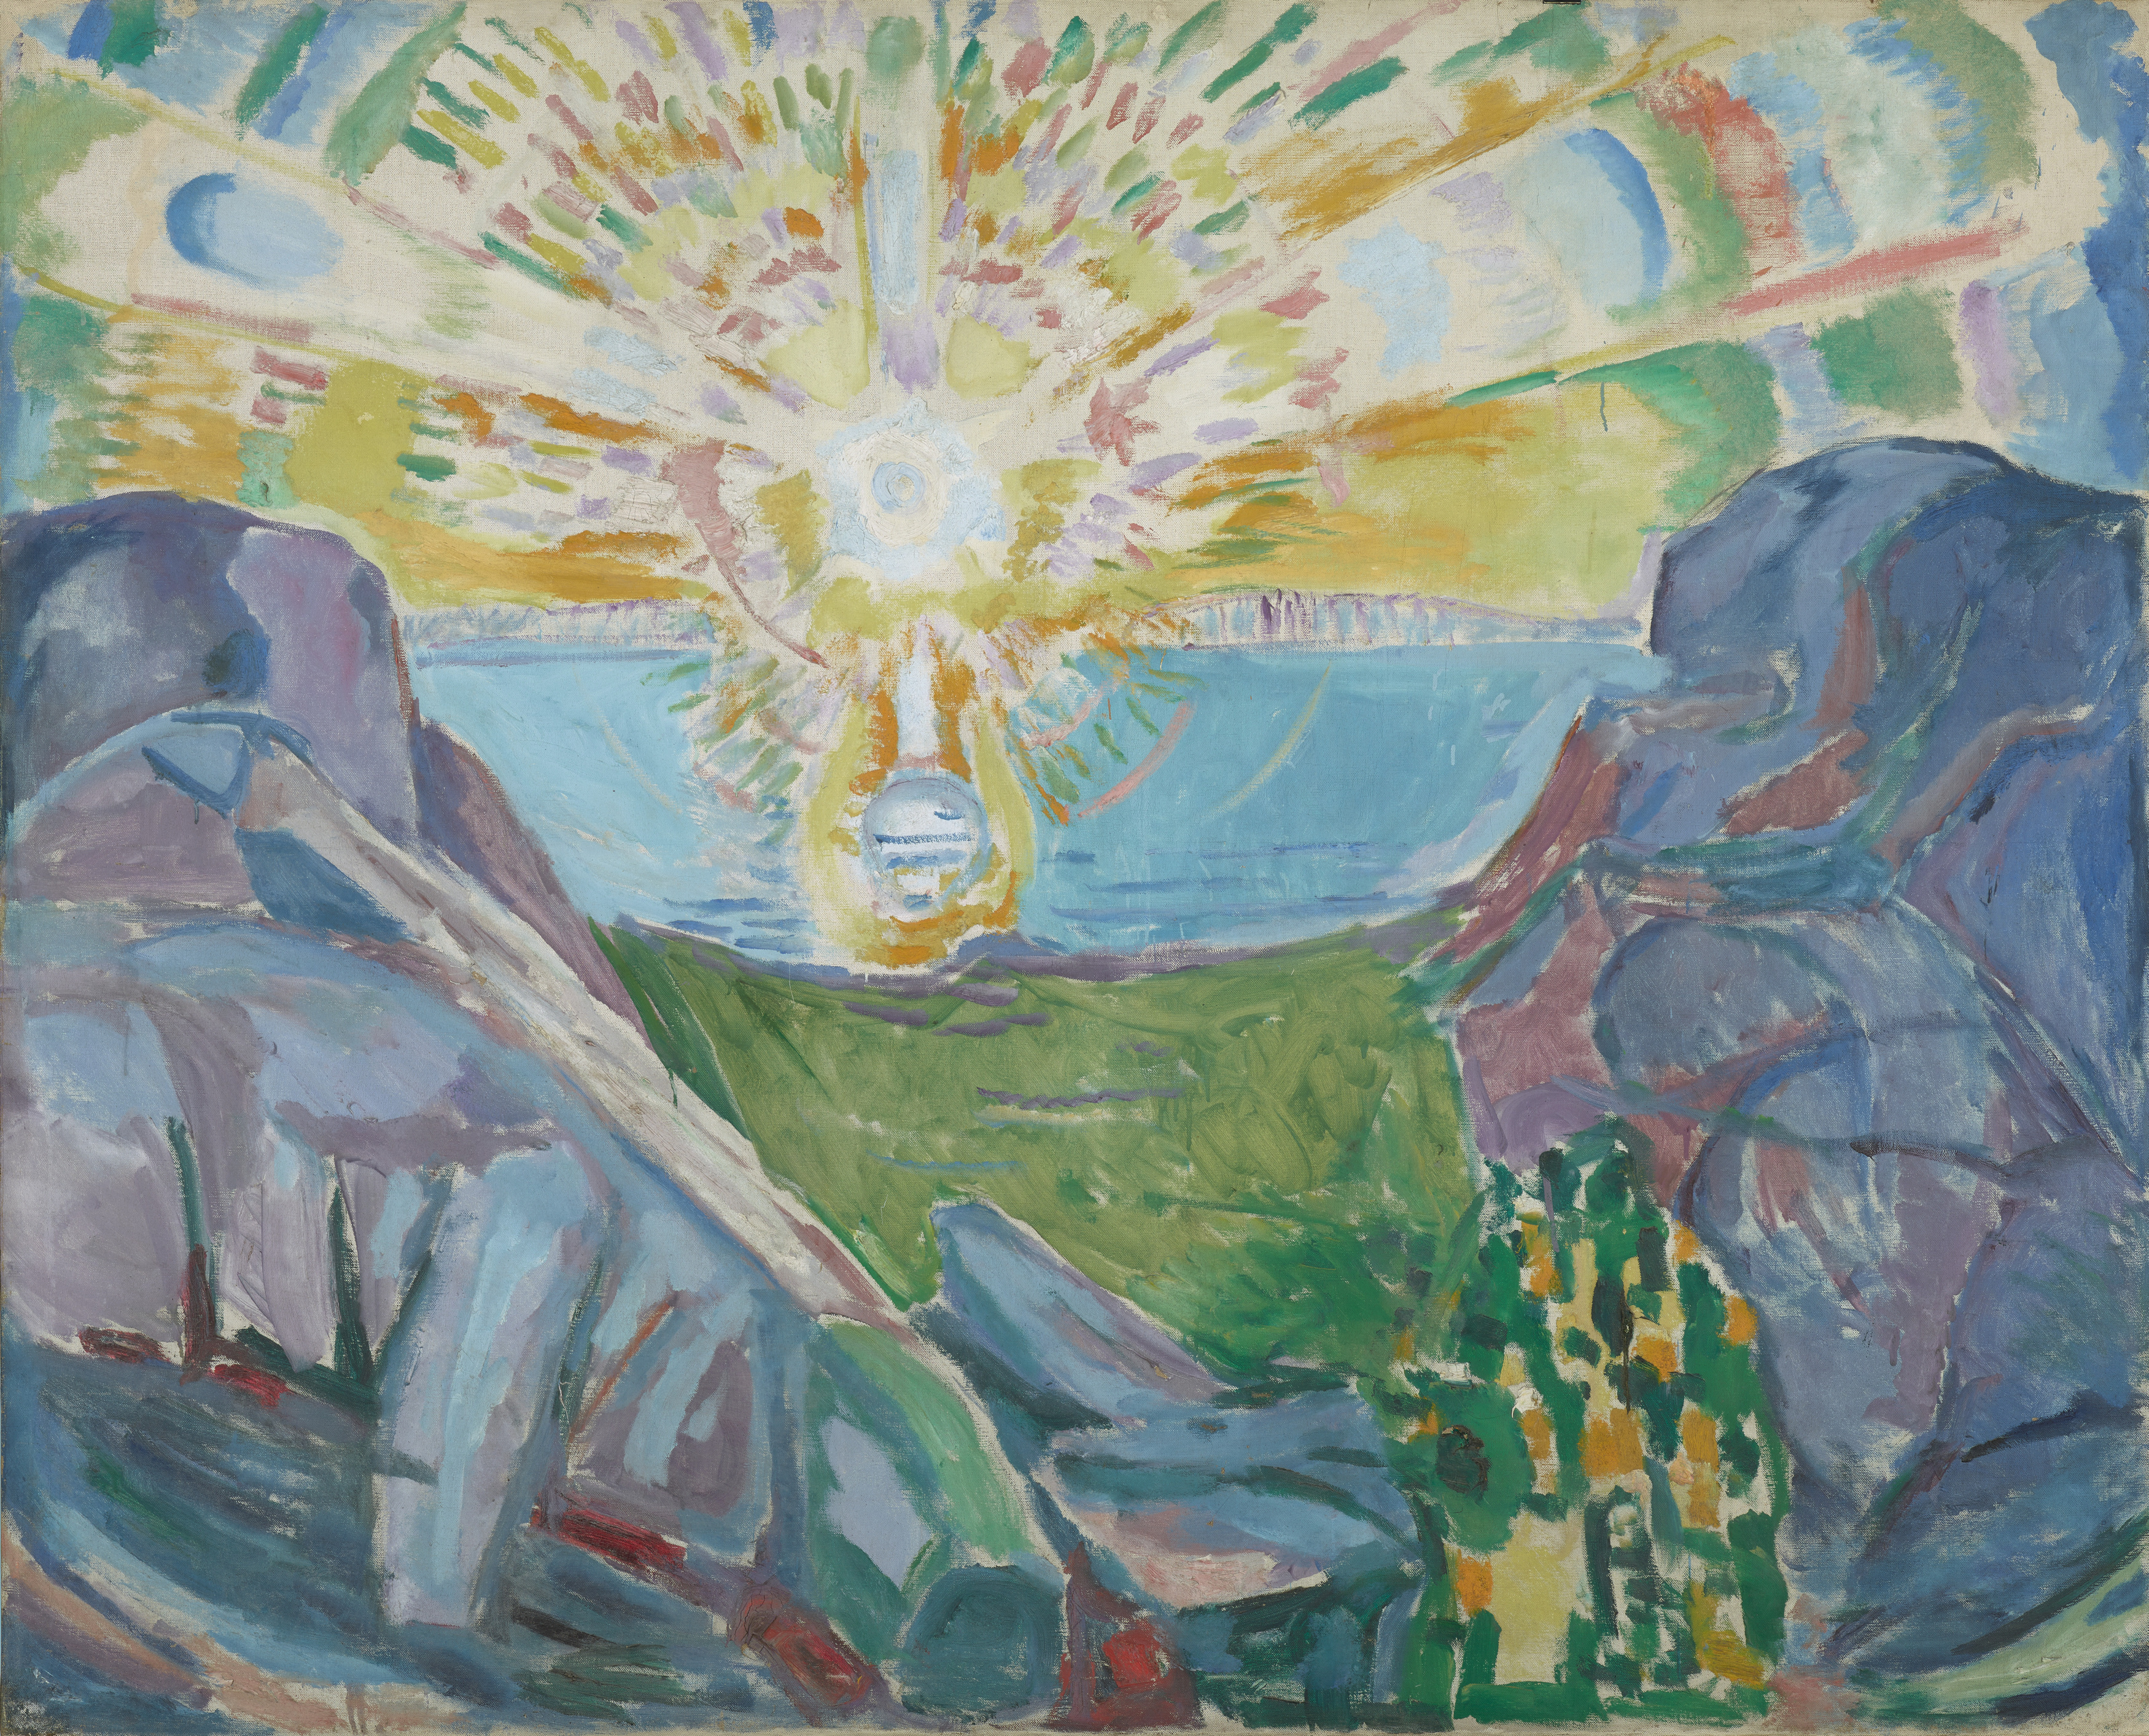 Edvard Munch: The Sun. Oil on canvas, 1910-13. Photo © Munchmuseet